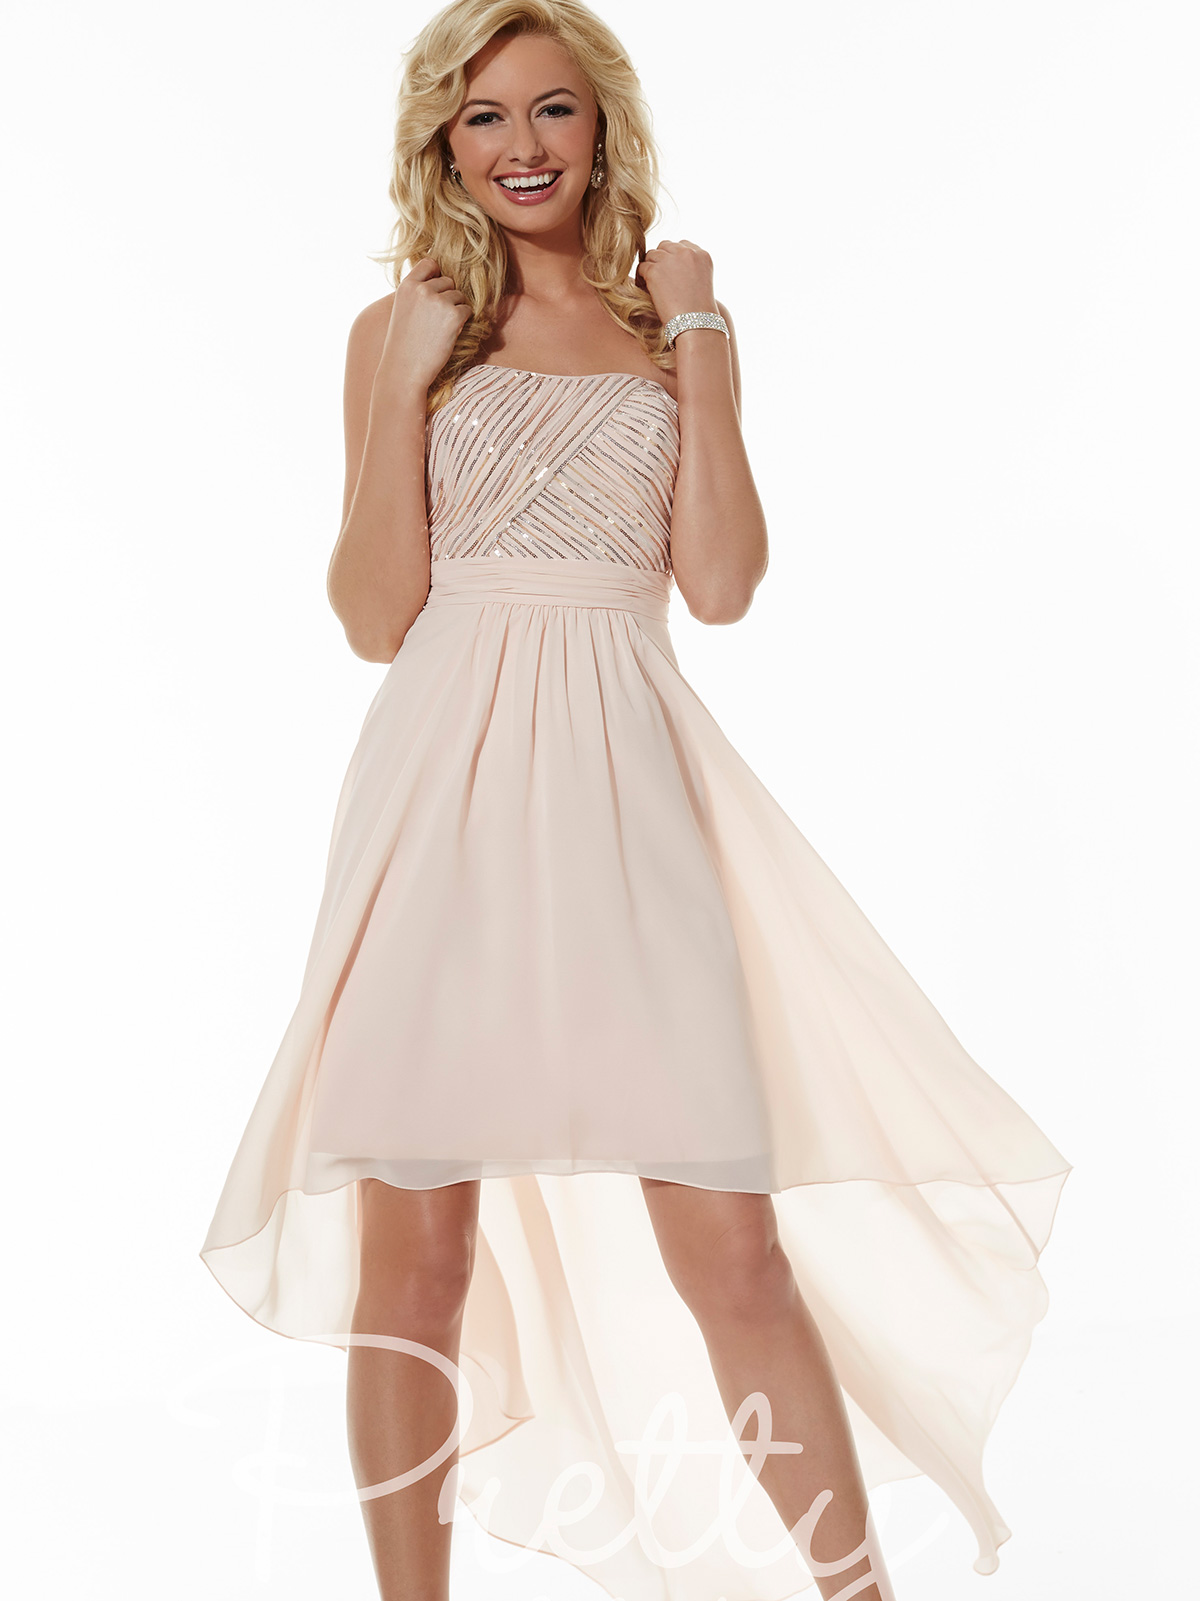 Pretty bridesmaid dresses bridesmaid dresses for A pretty wedding dress